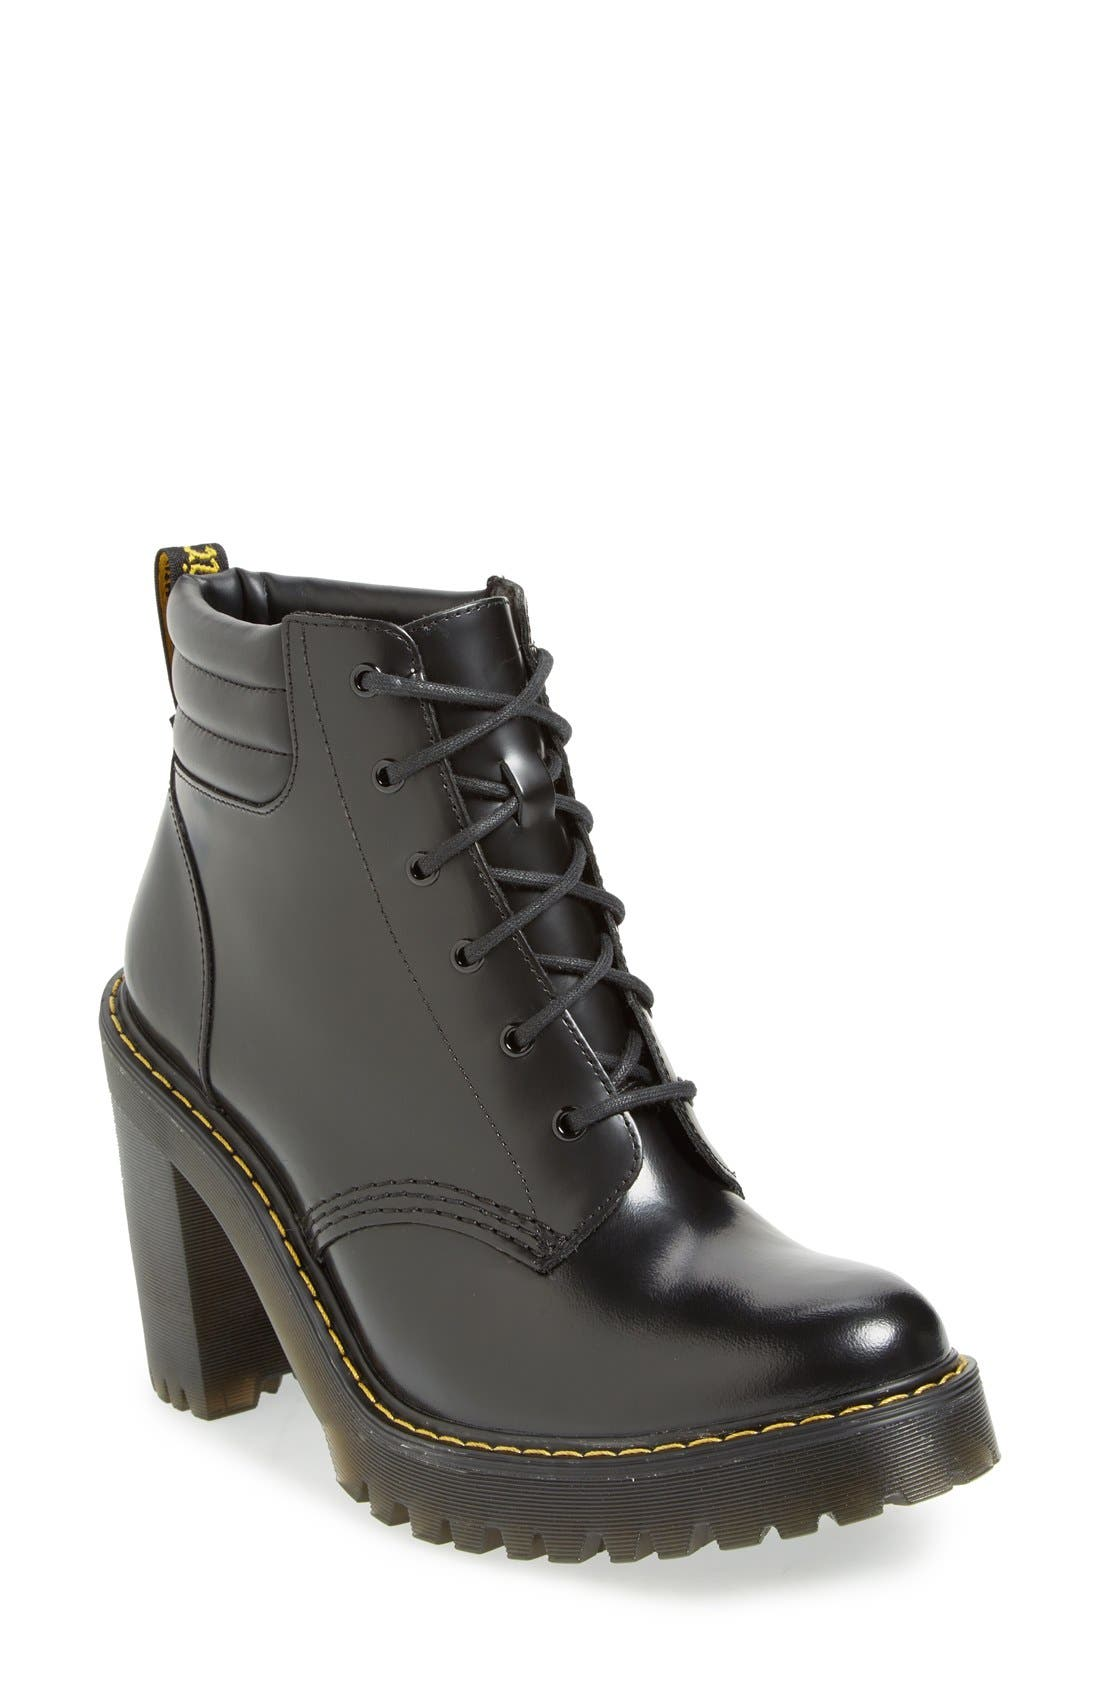 Alternate Image 1 Selected - Dr. Martens 'Persephone' Platform Boot (Women)